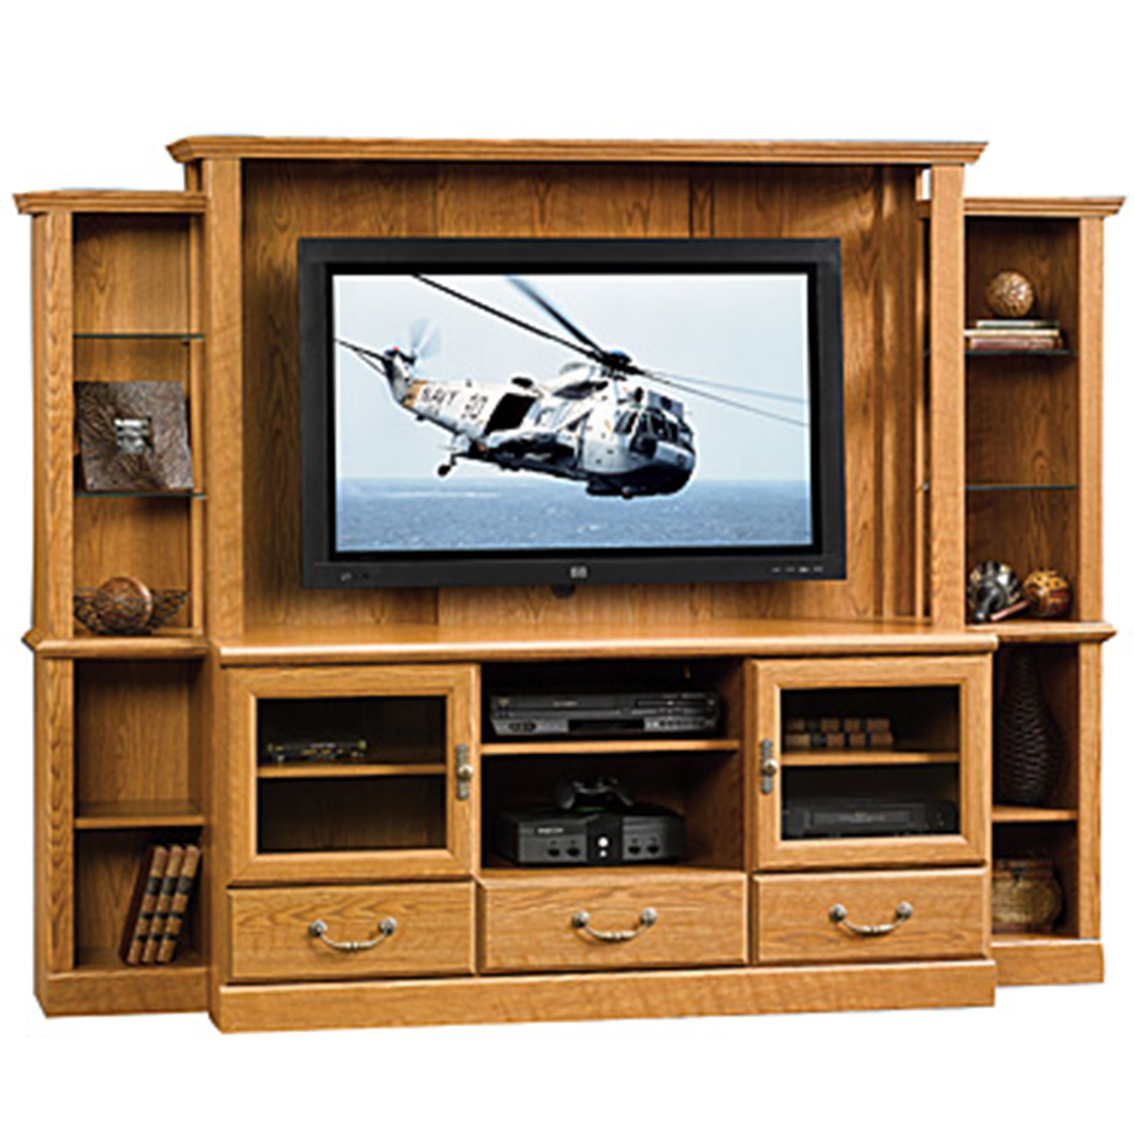 Sauder orchard hill home theater media furniture home for Hometown furniture exchange